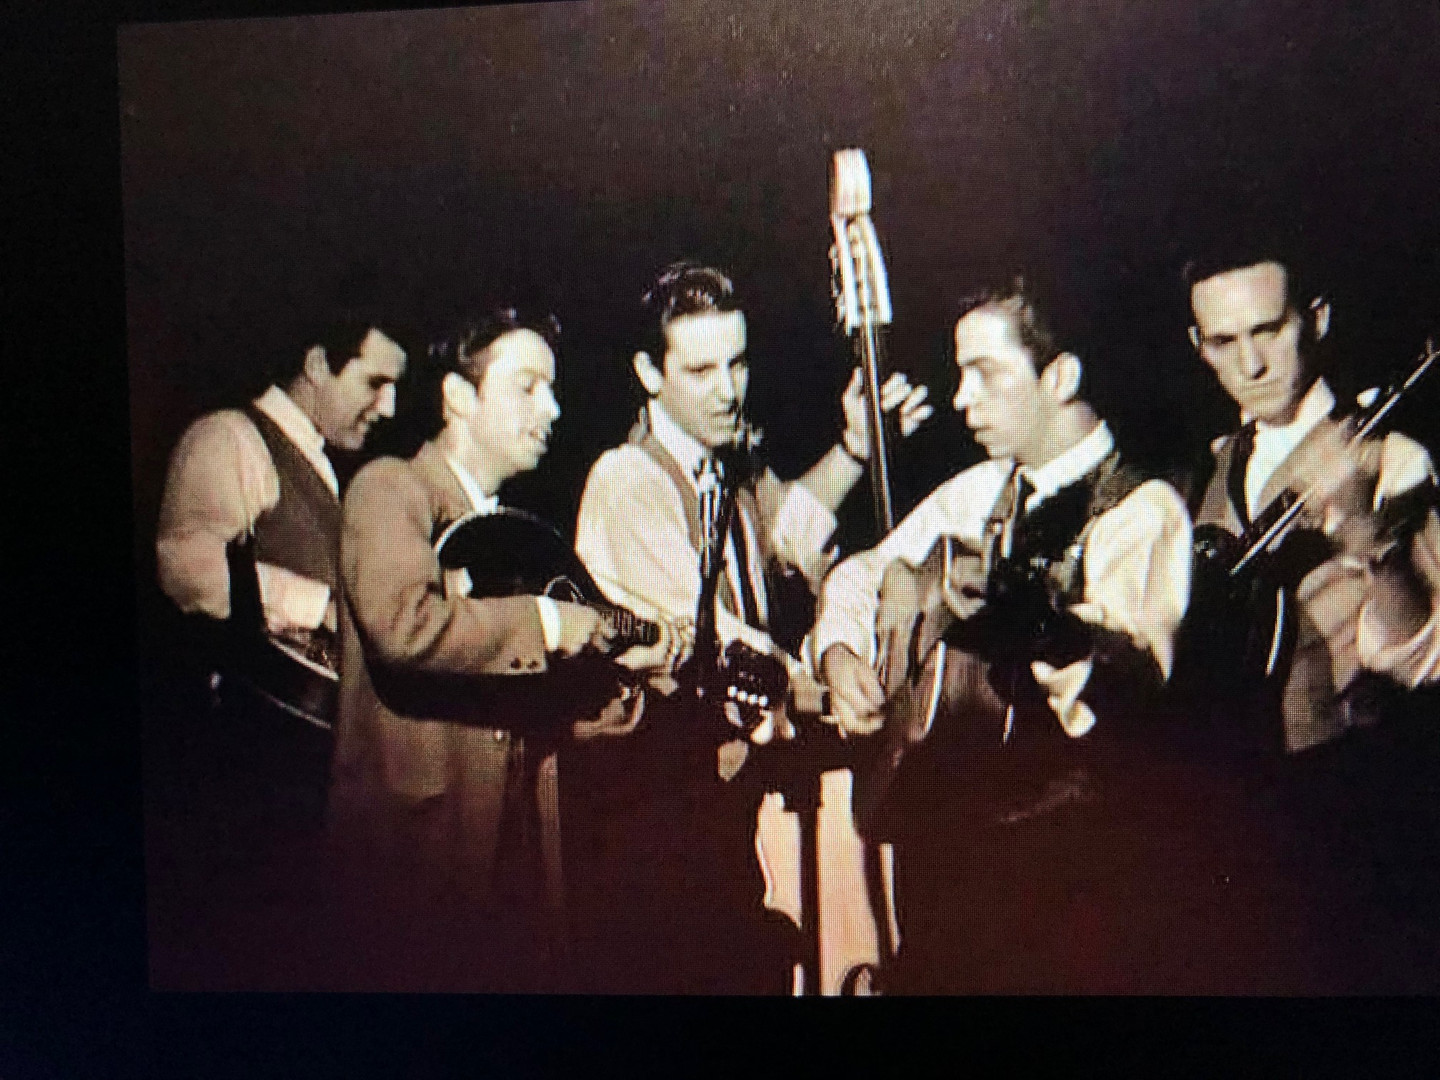 Left to Right: LeRoy Mack, Roland White, Roger Bush, Clarence White, Billy Ray Lathum